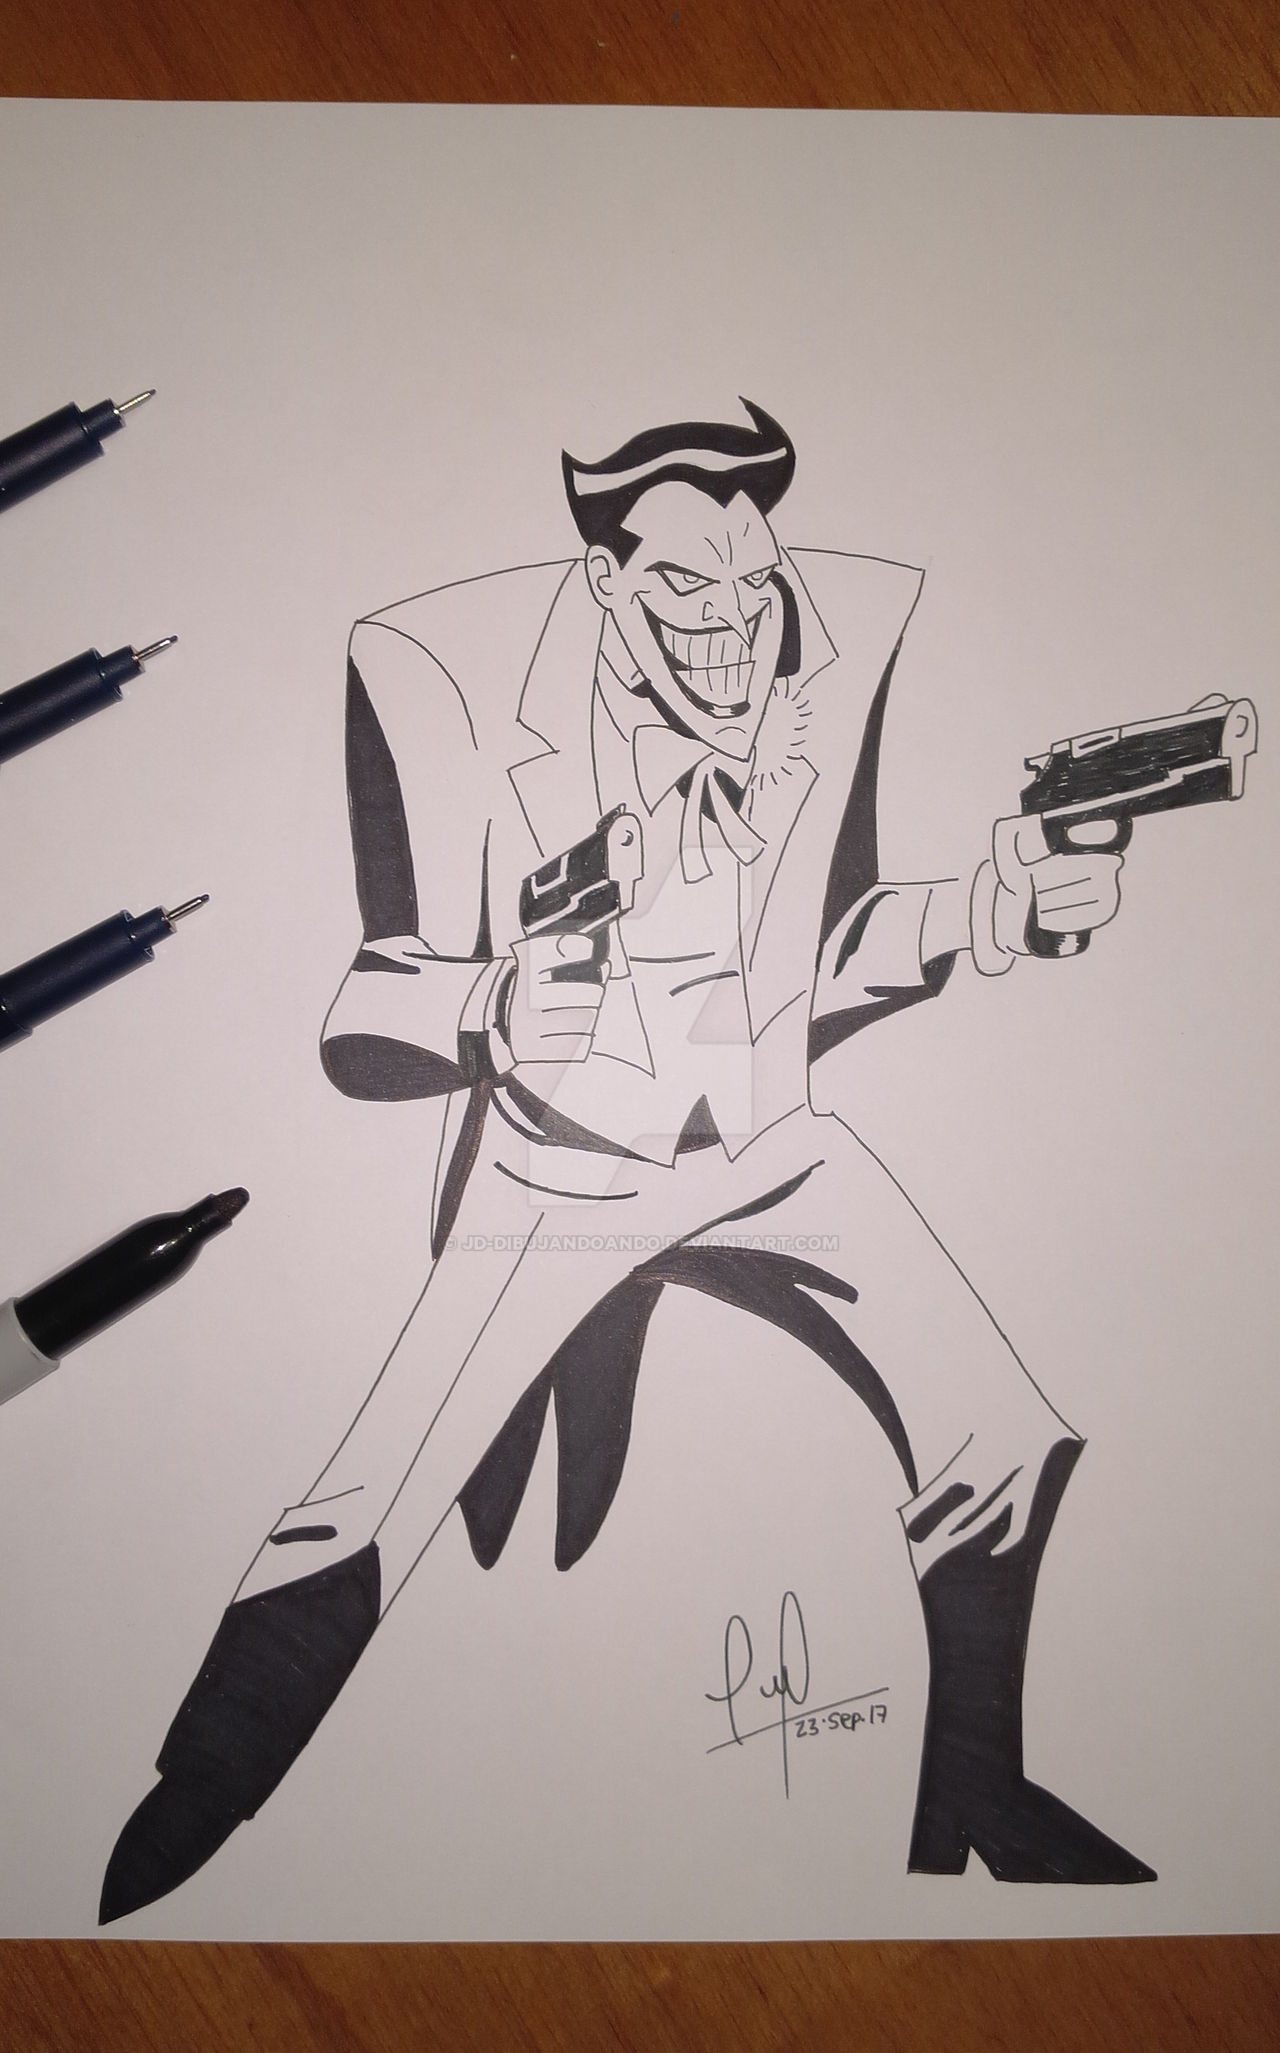 The Joker From Batman The Animated Series By Jd